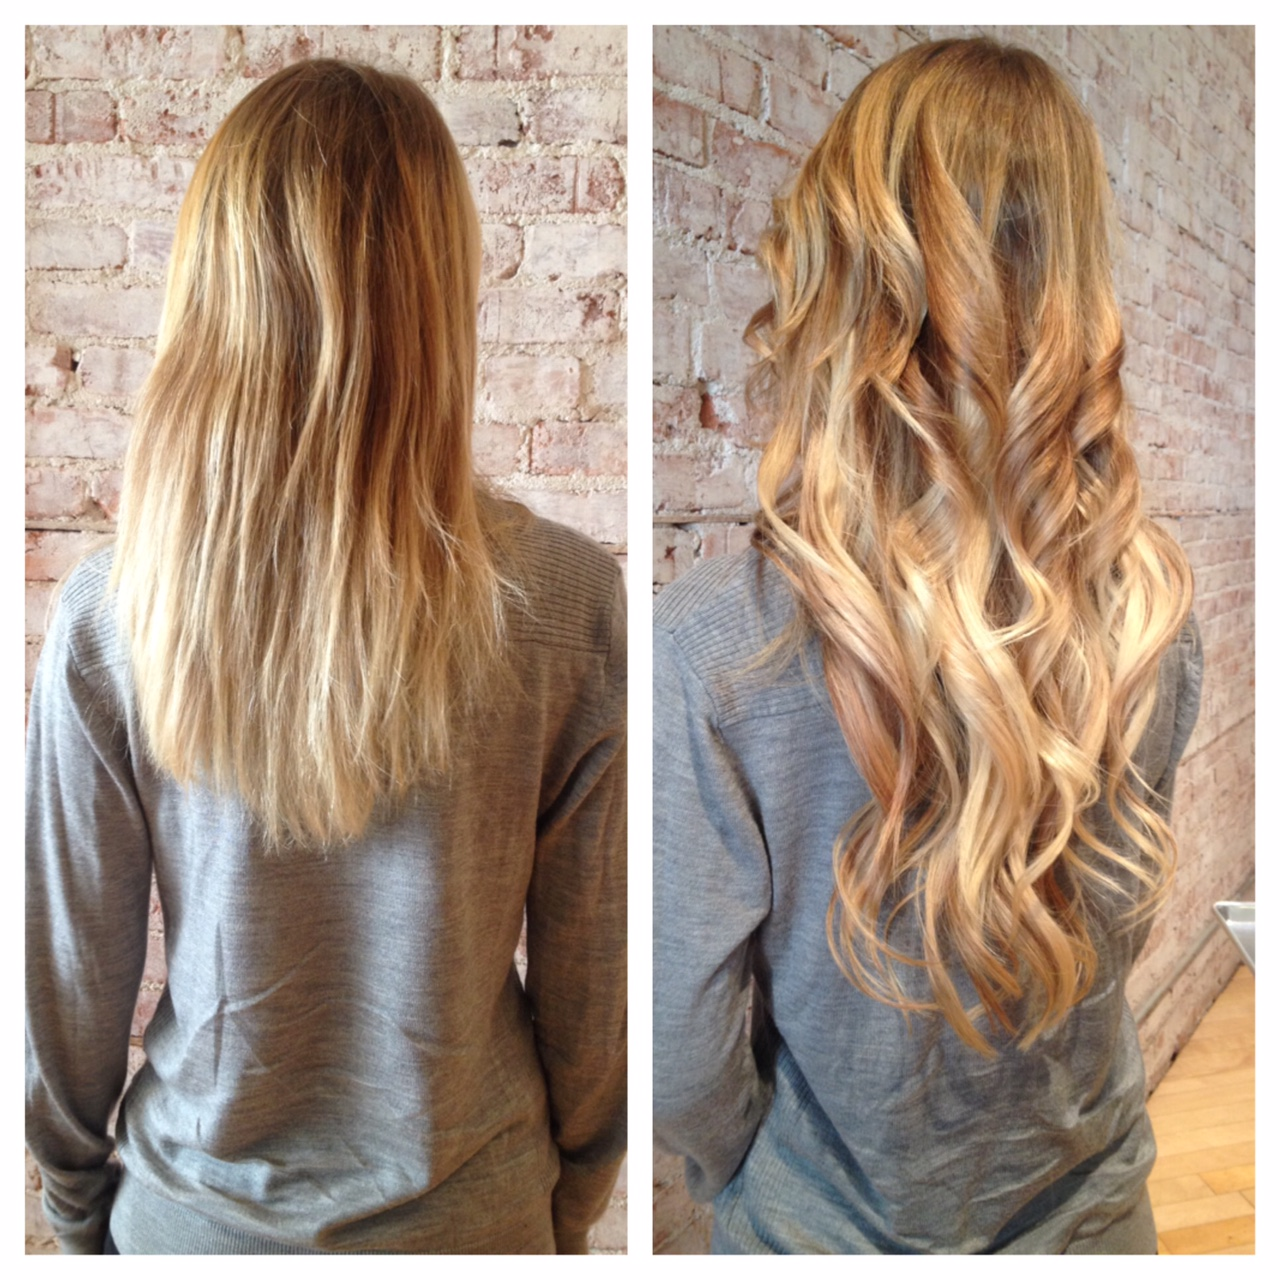 Before And After Client Photos